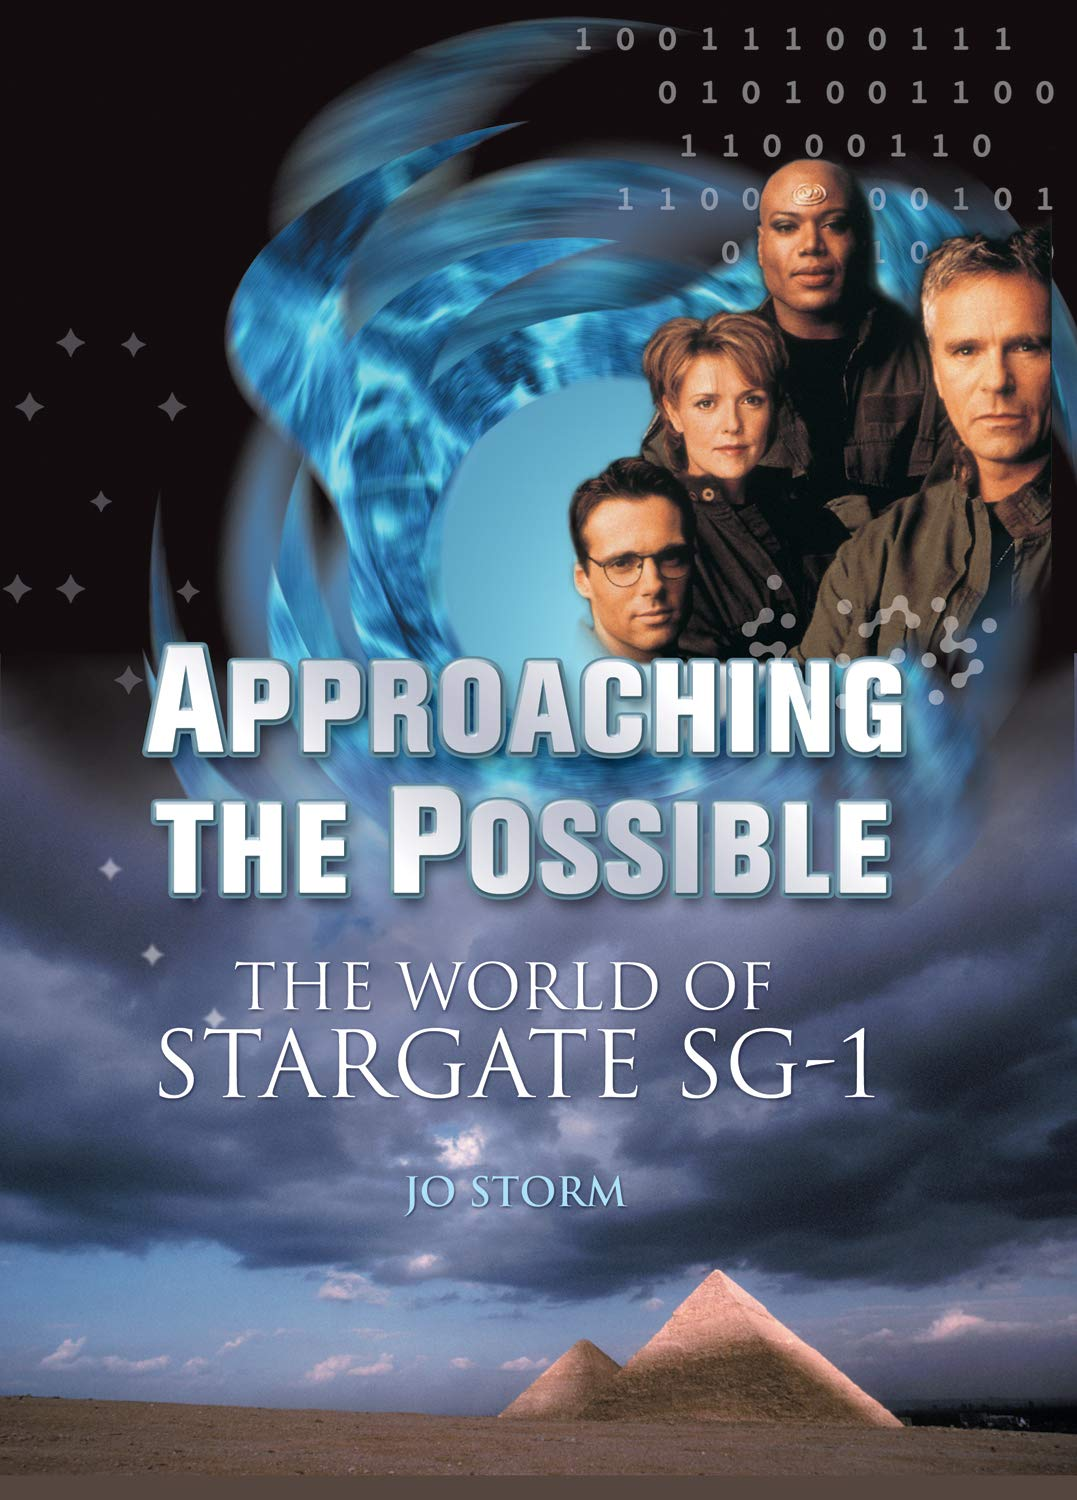 Stargate SG-1 Character Playing Cards from 2005